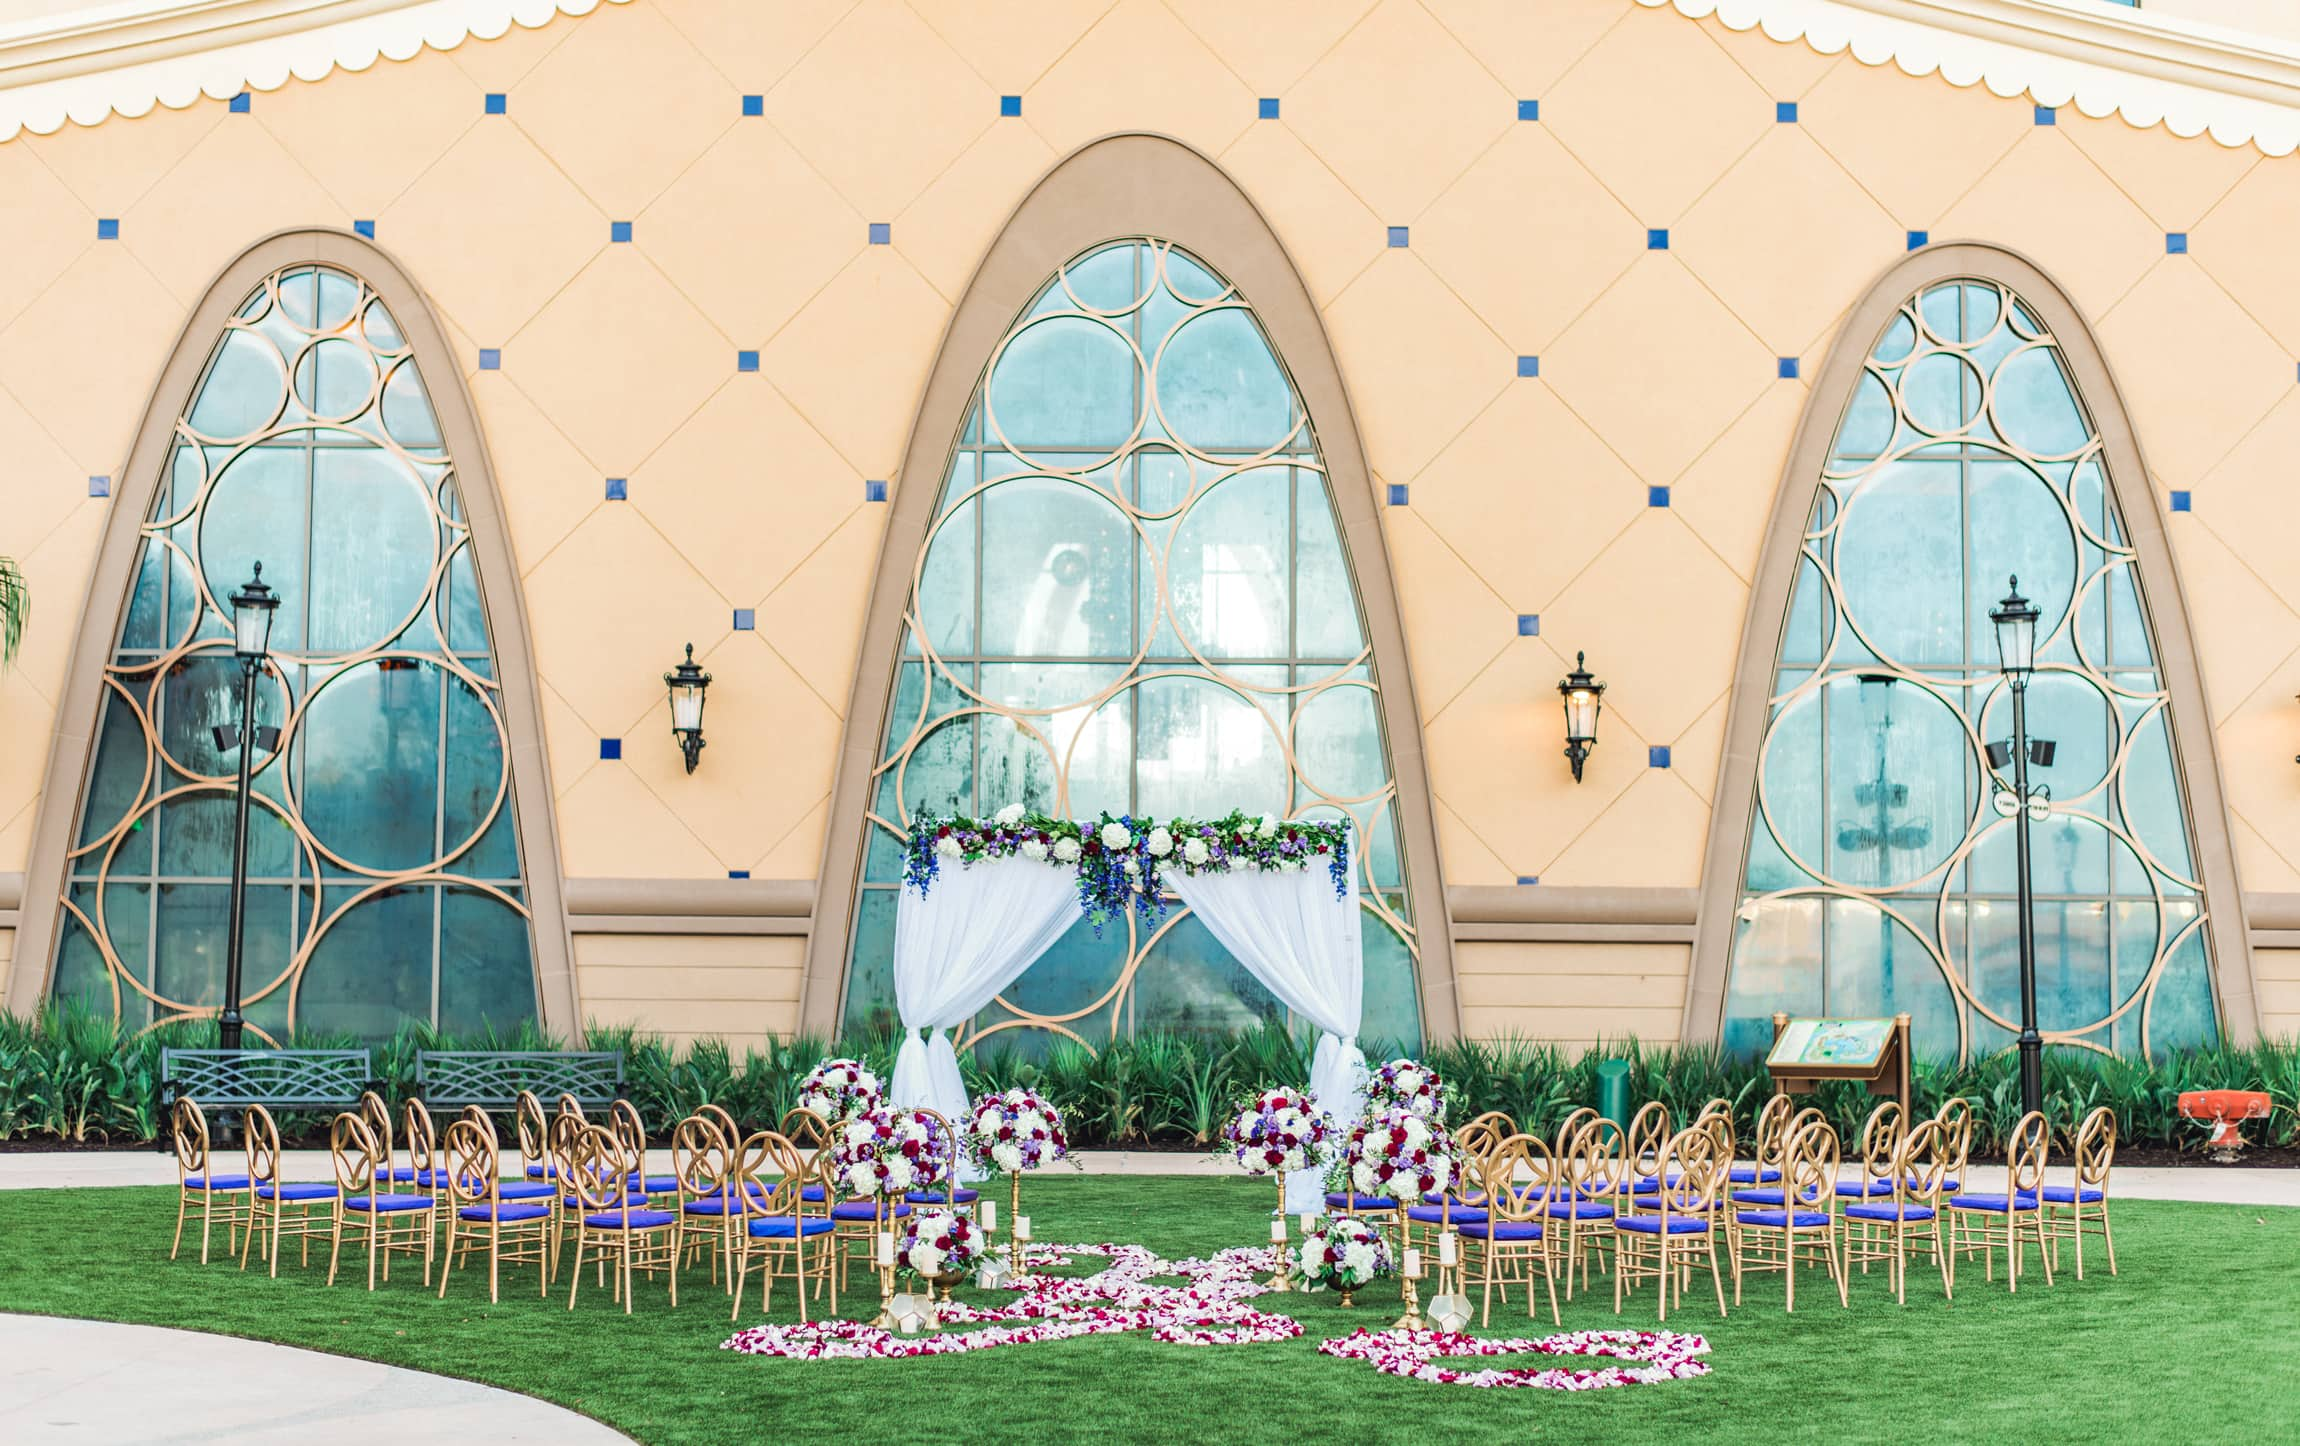 Chairs arranged on lawn facing a large building with many windows and floral decorations